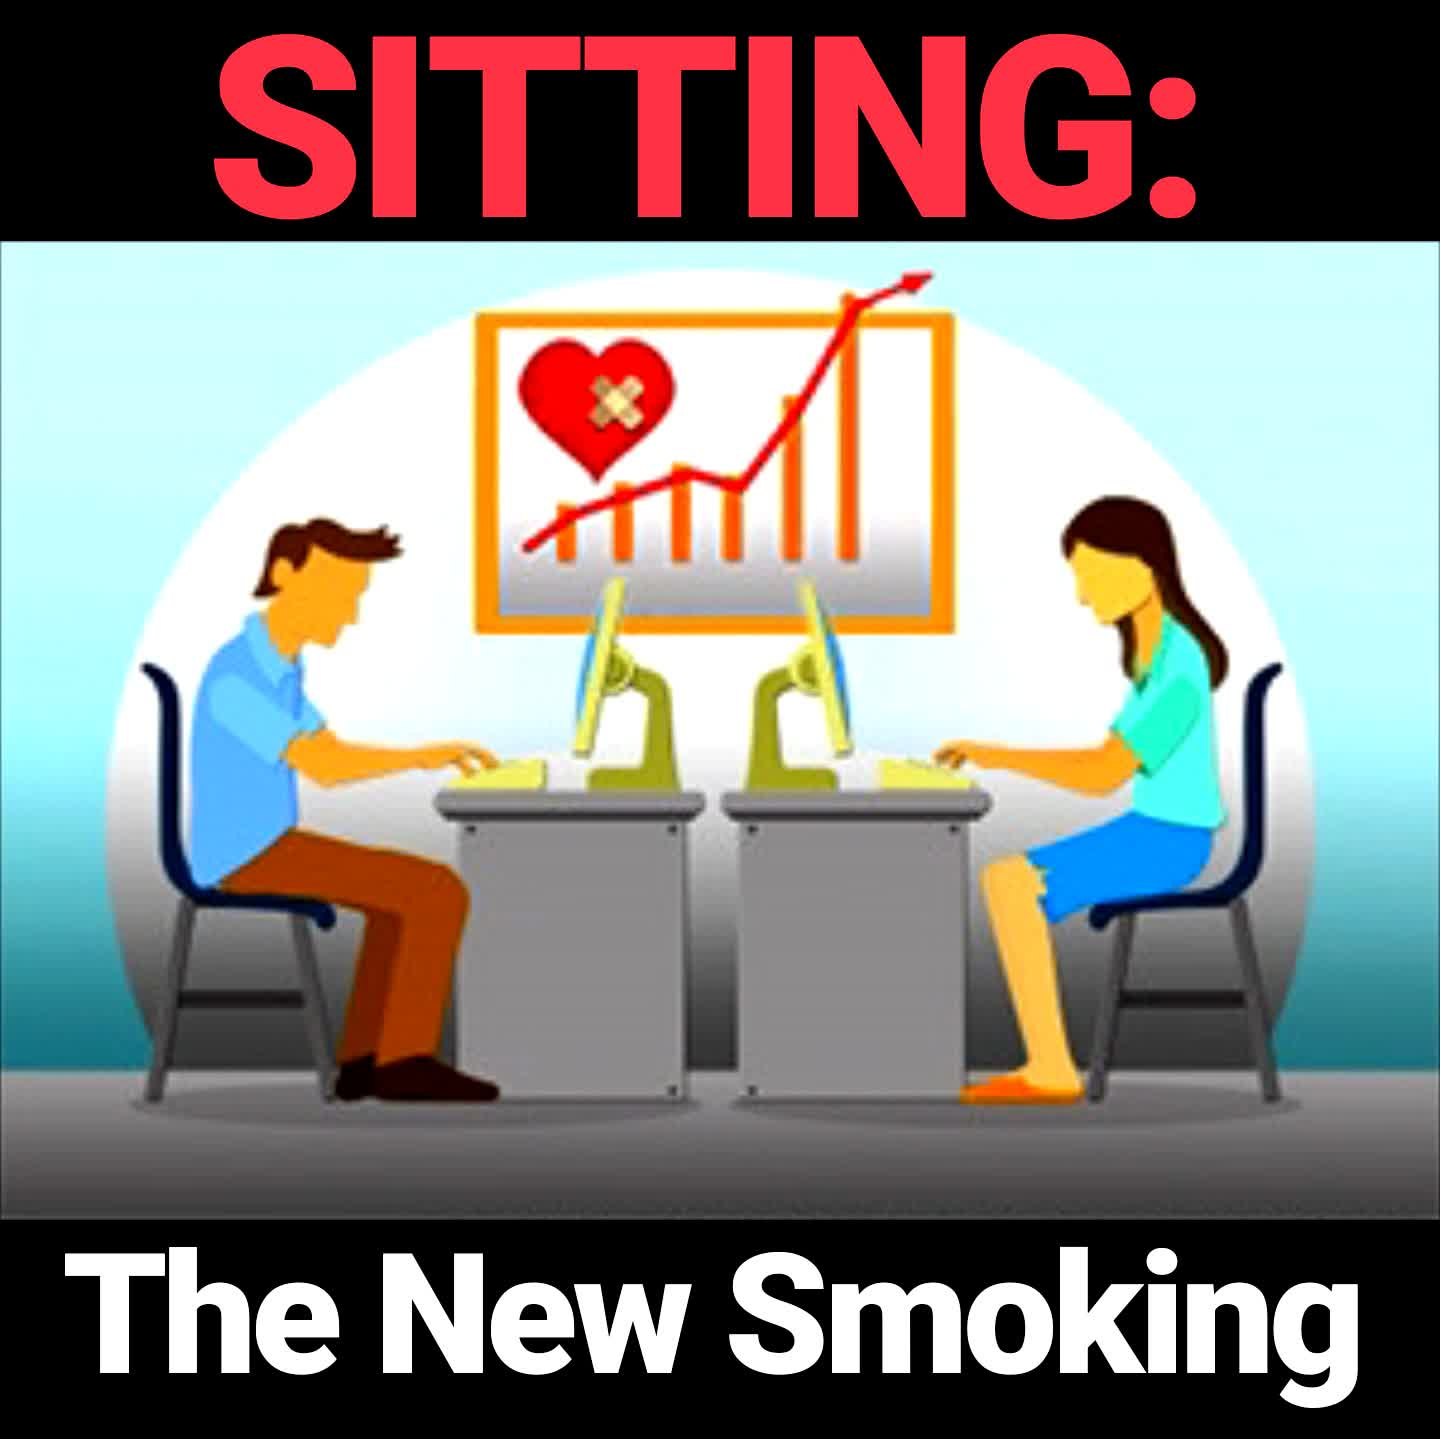 Sitting is bad graphic